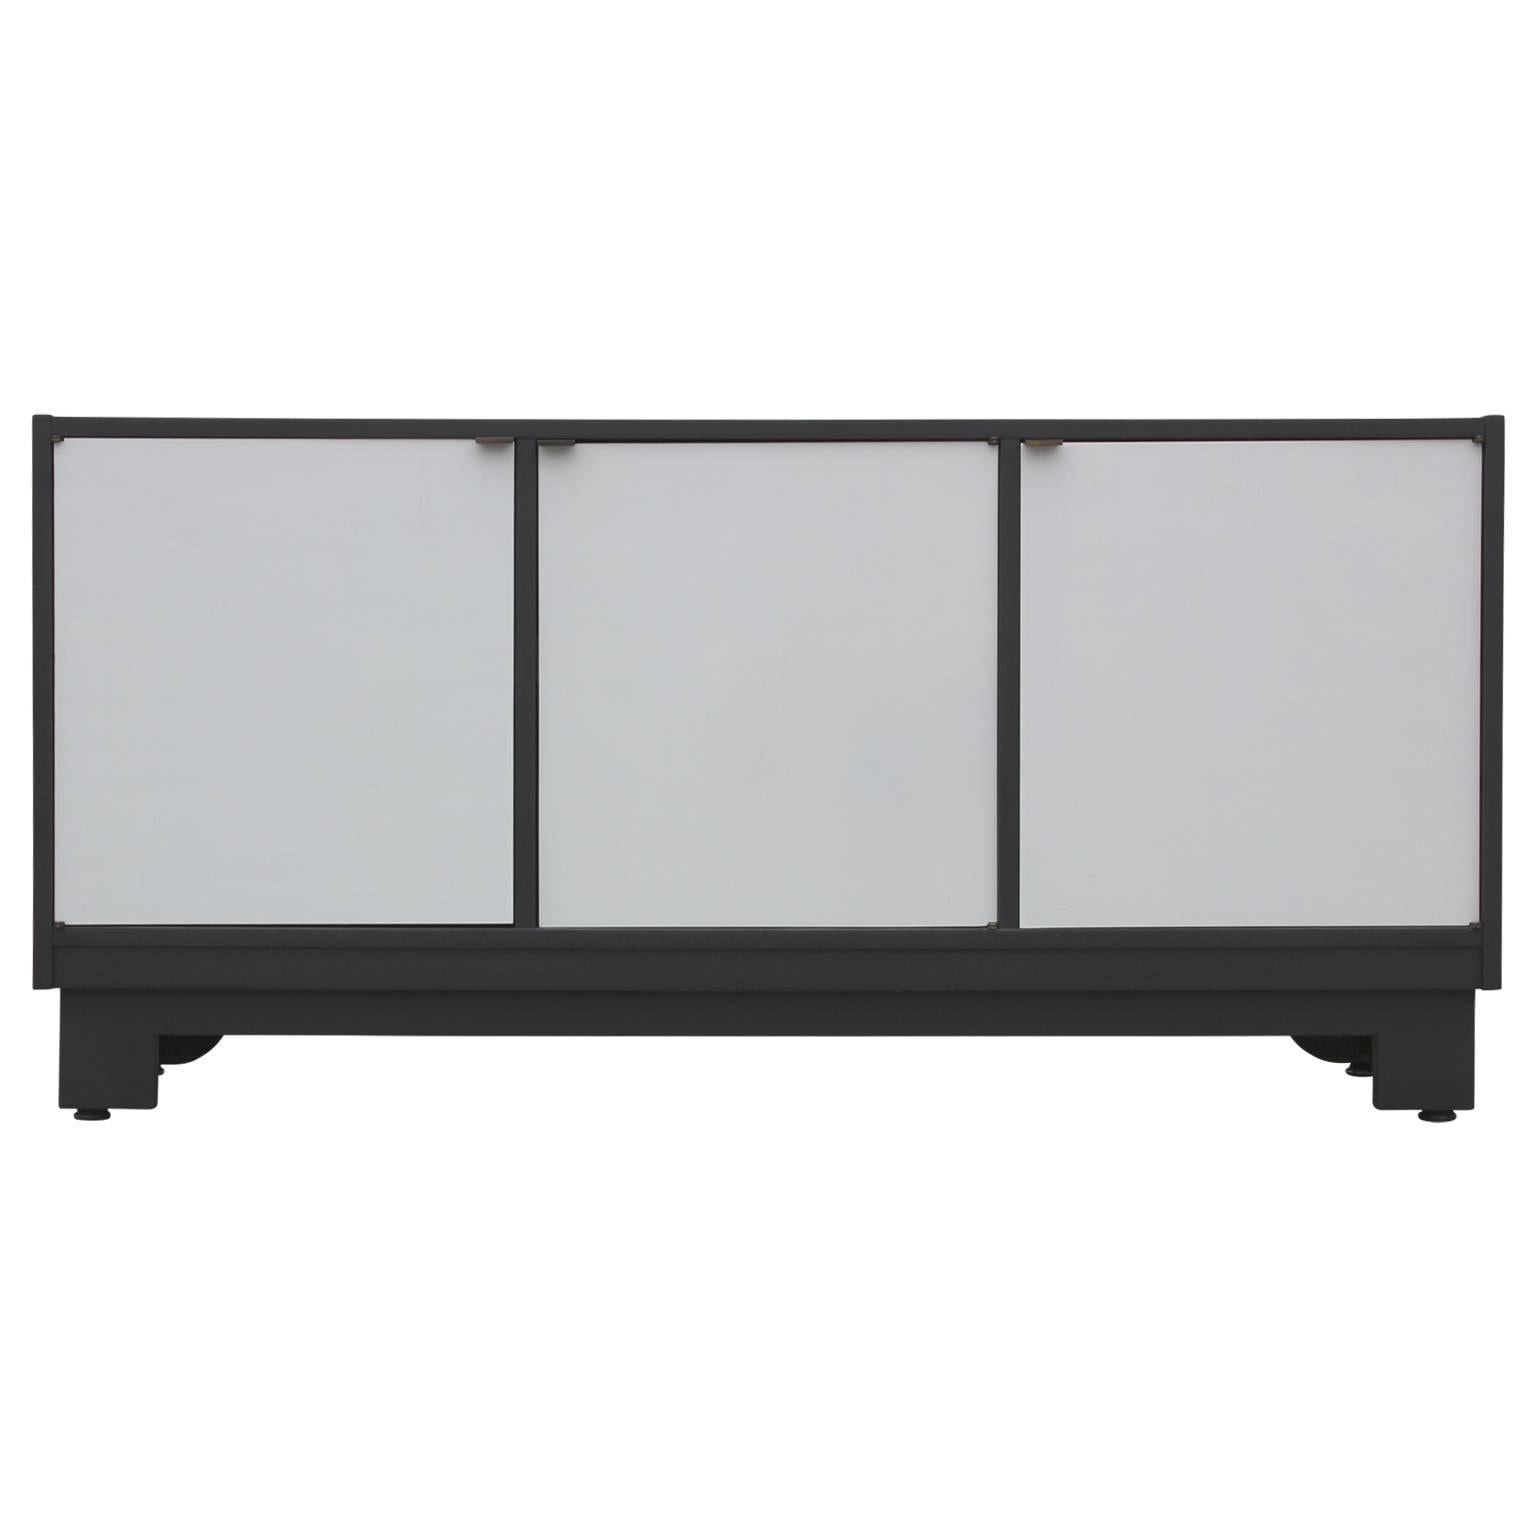 Mid-Century Modern Clean Lined Black and Grey Cabinet or Sideboard